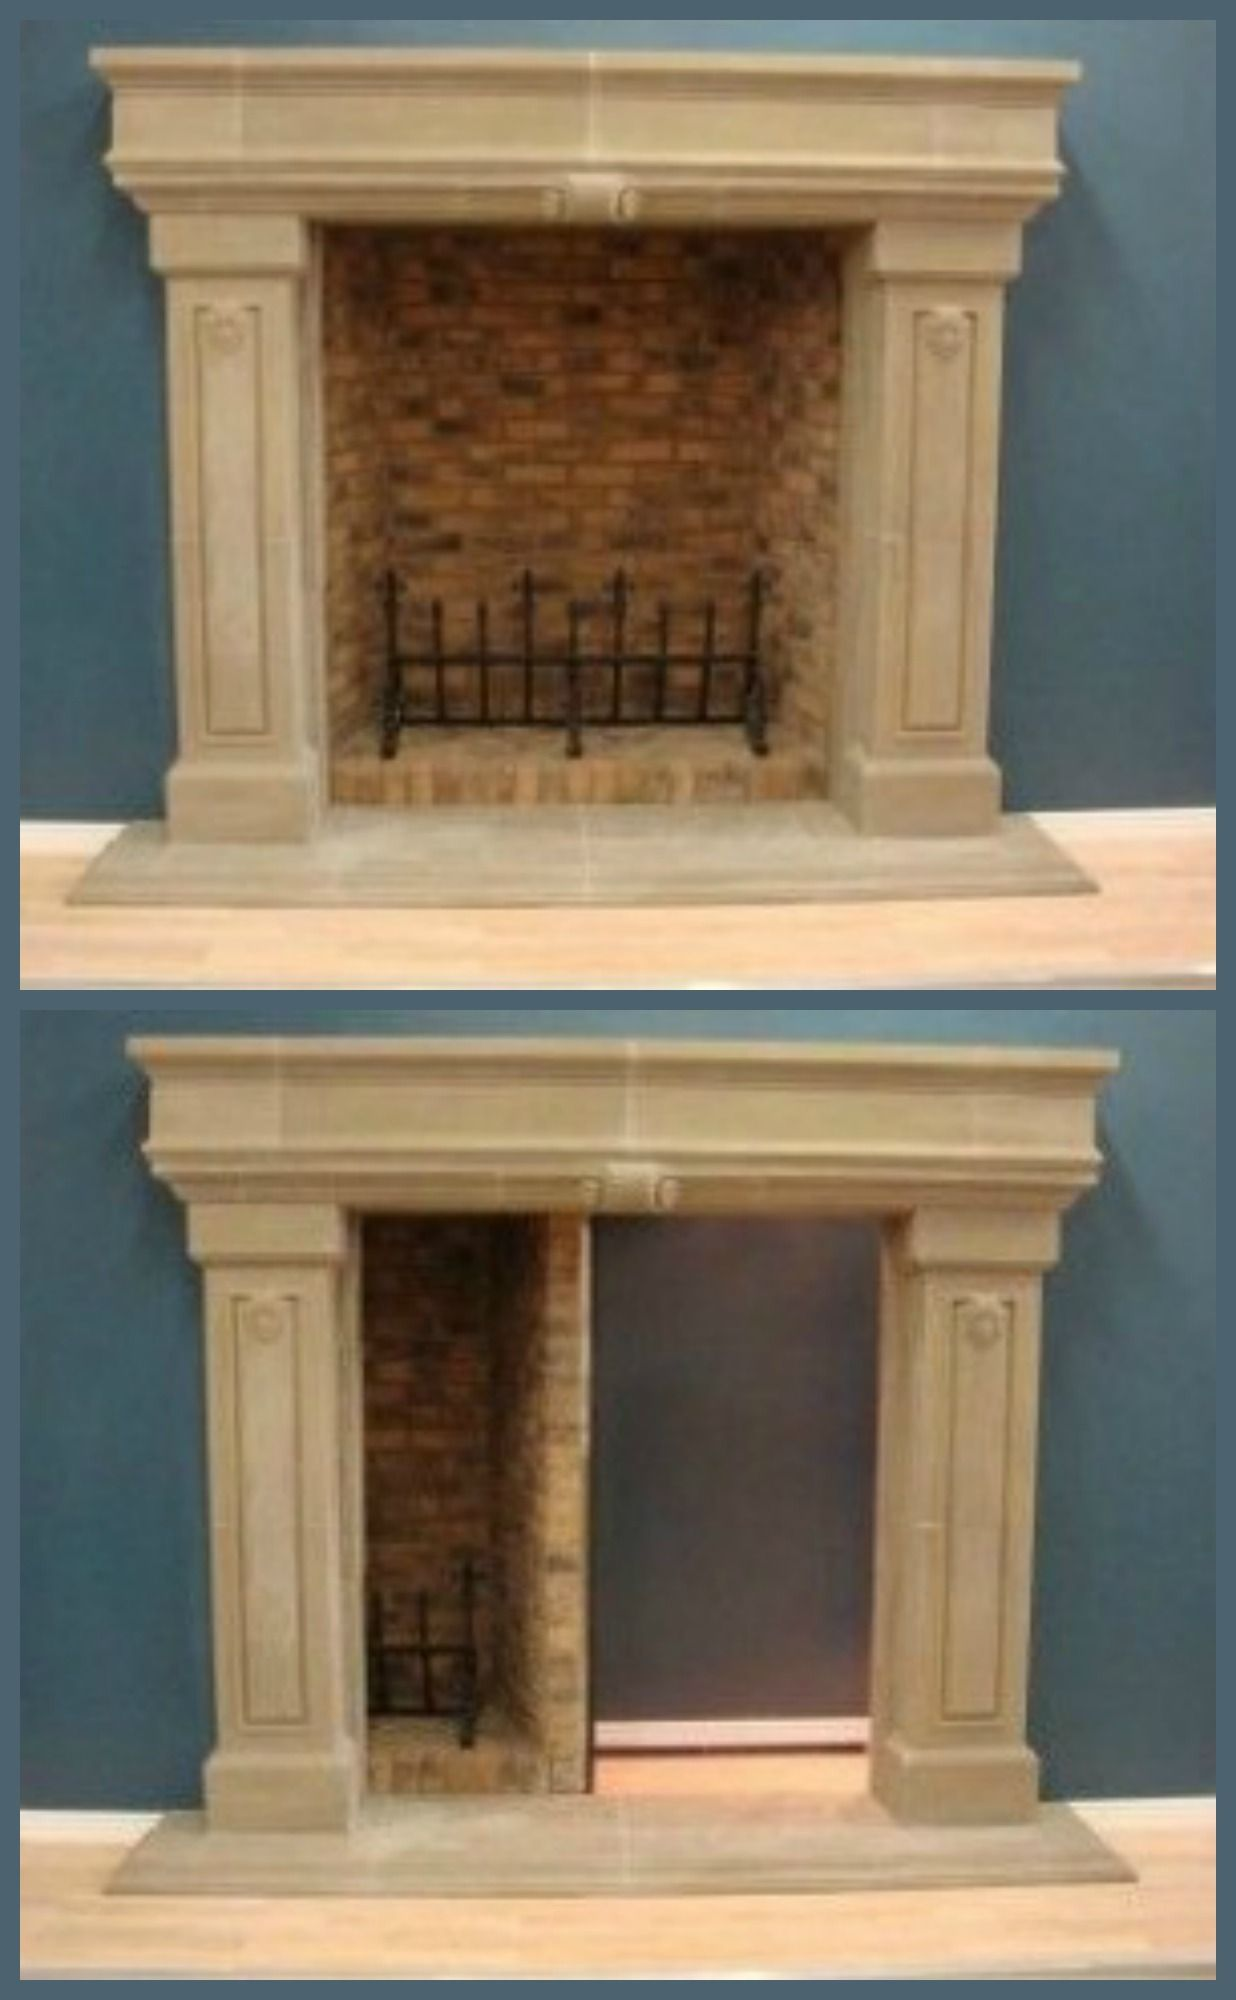 Secret Room Behind The Fireplace Diy Home Security Ideas